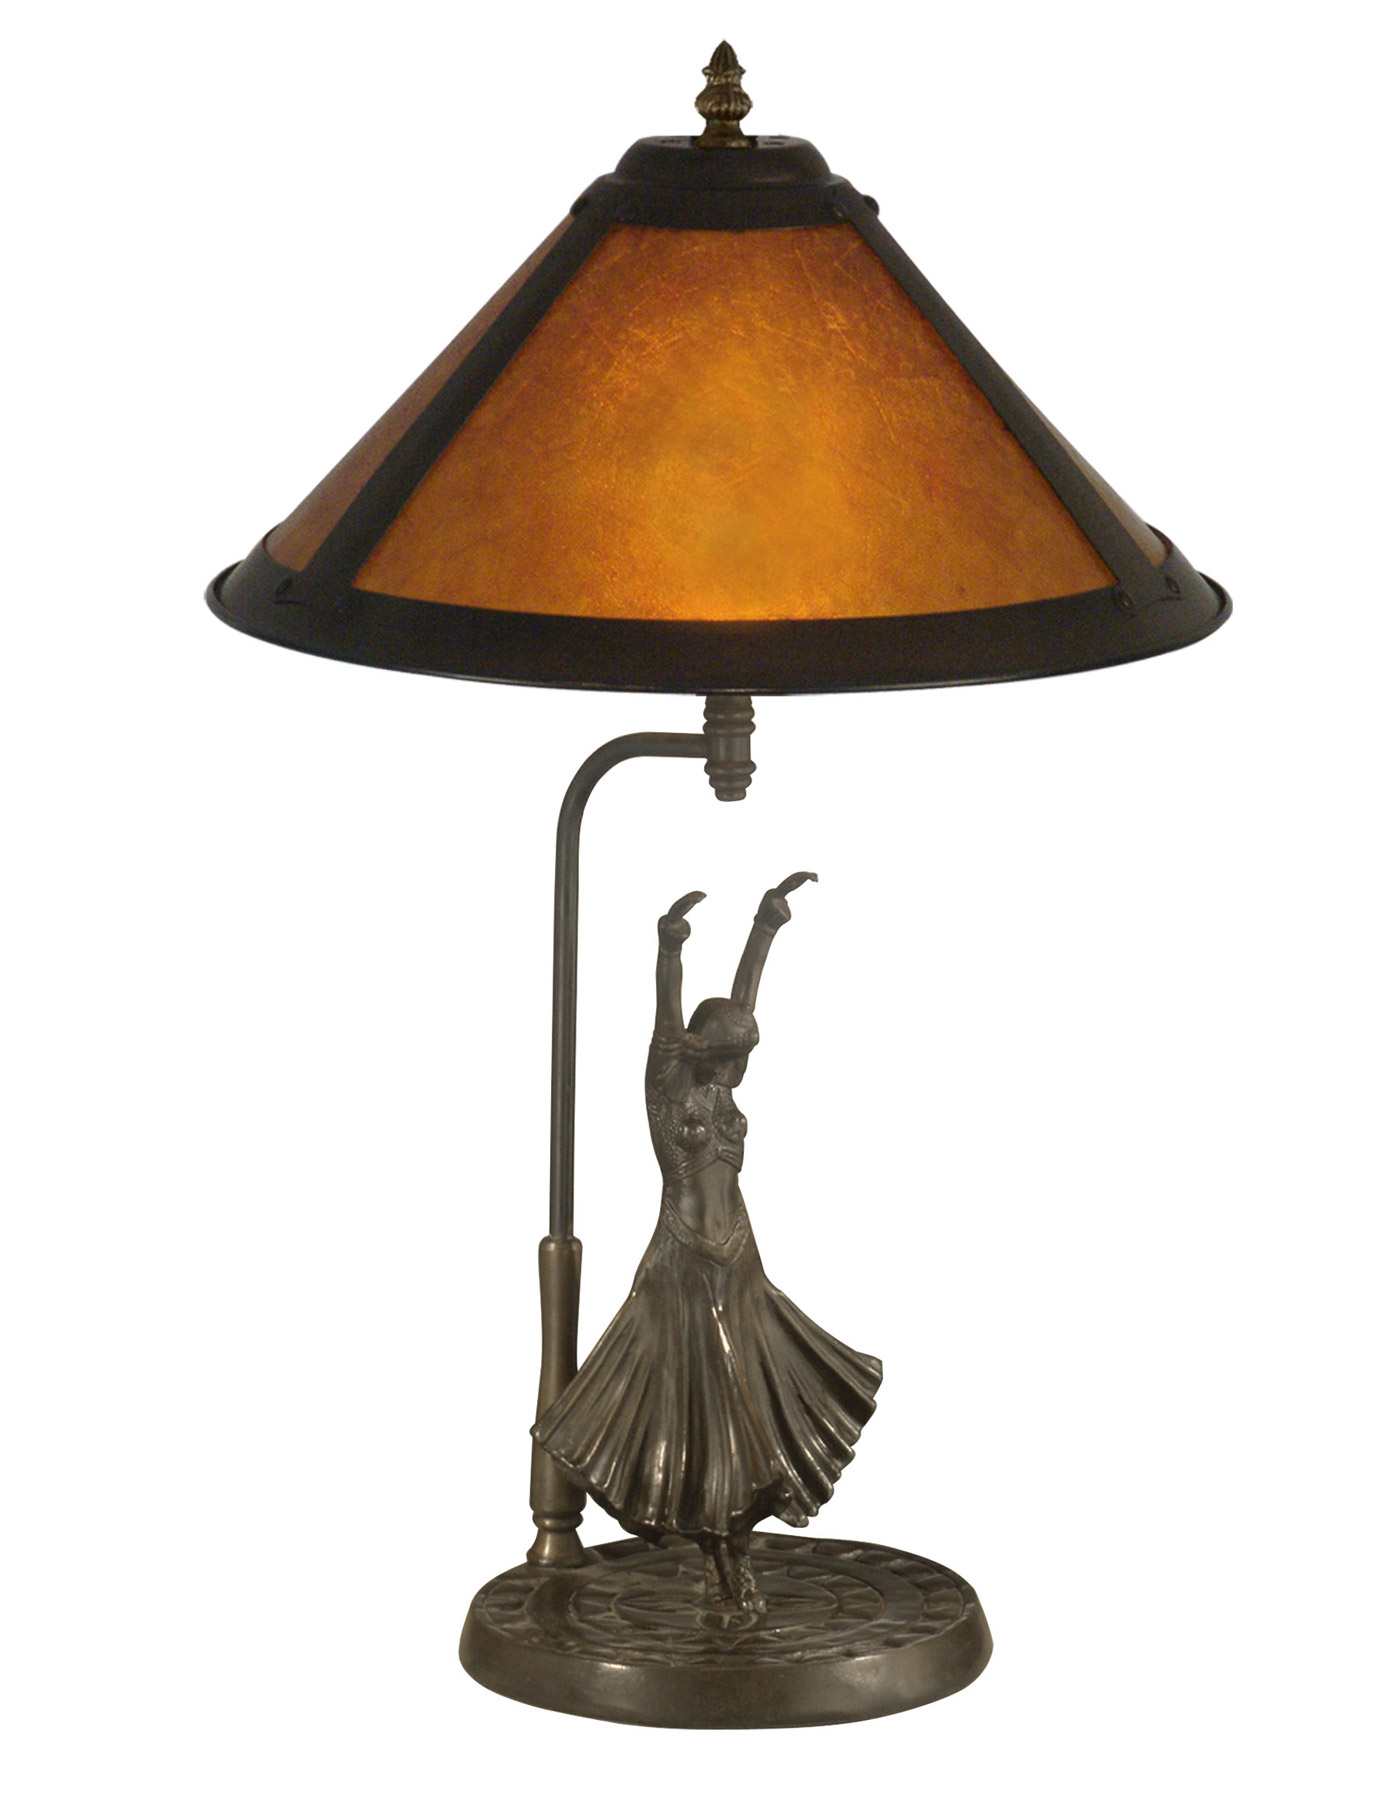 Dale Tiffany TT11185 Dancer Table Lamp